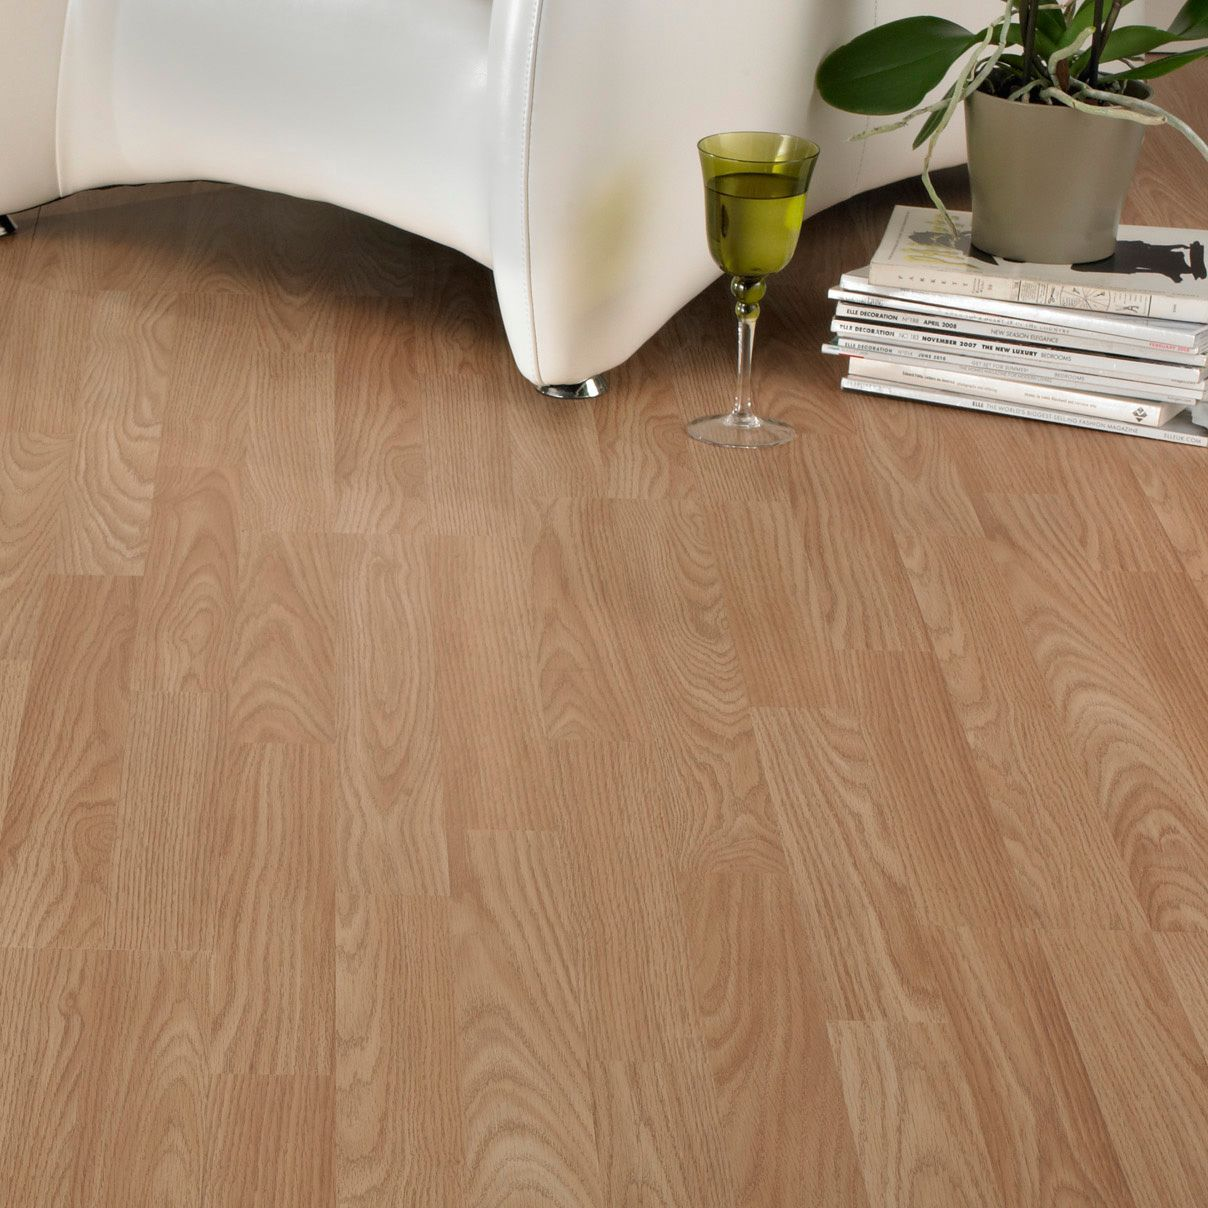 b q oak effect 3 strip laminate flooring 3 m. Black Bedroom Furniture Sets. Home Design Ideas